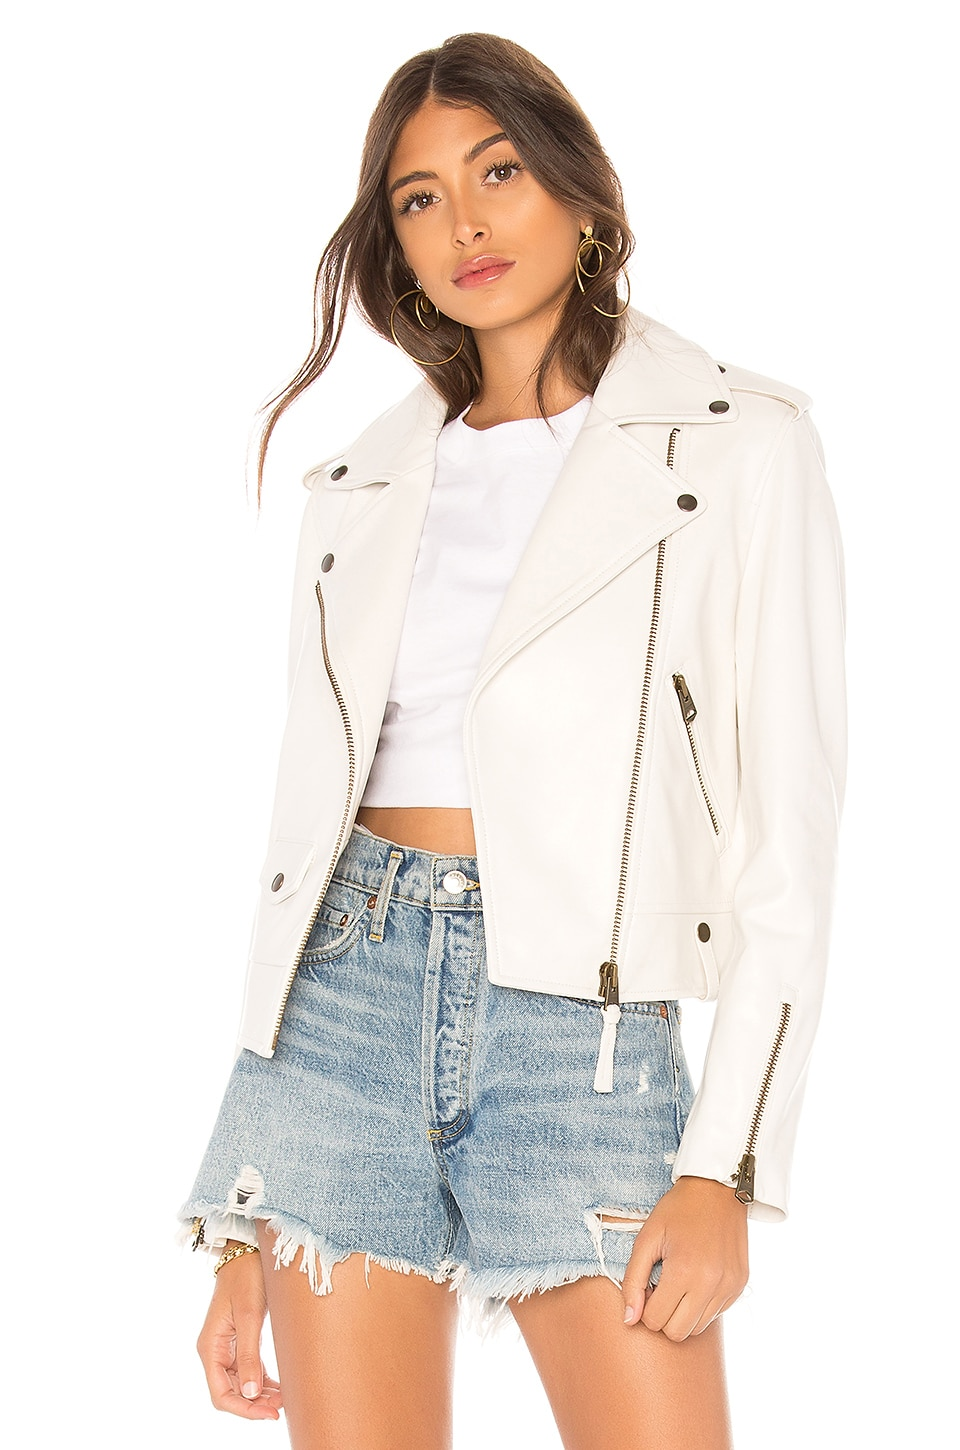 Mackage Baya Leather Jacket in White